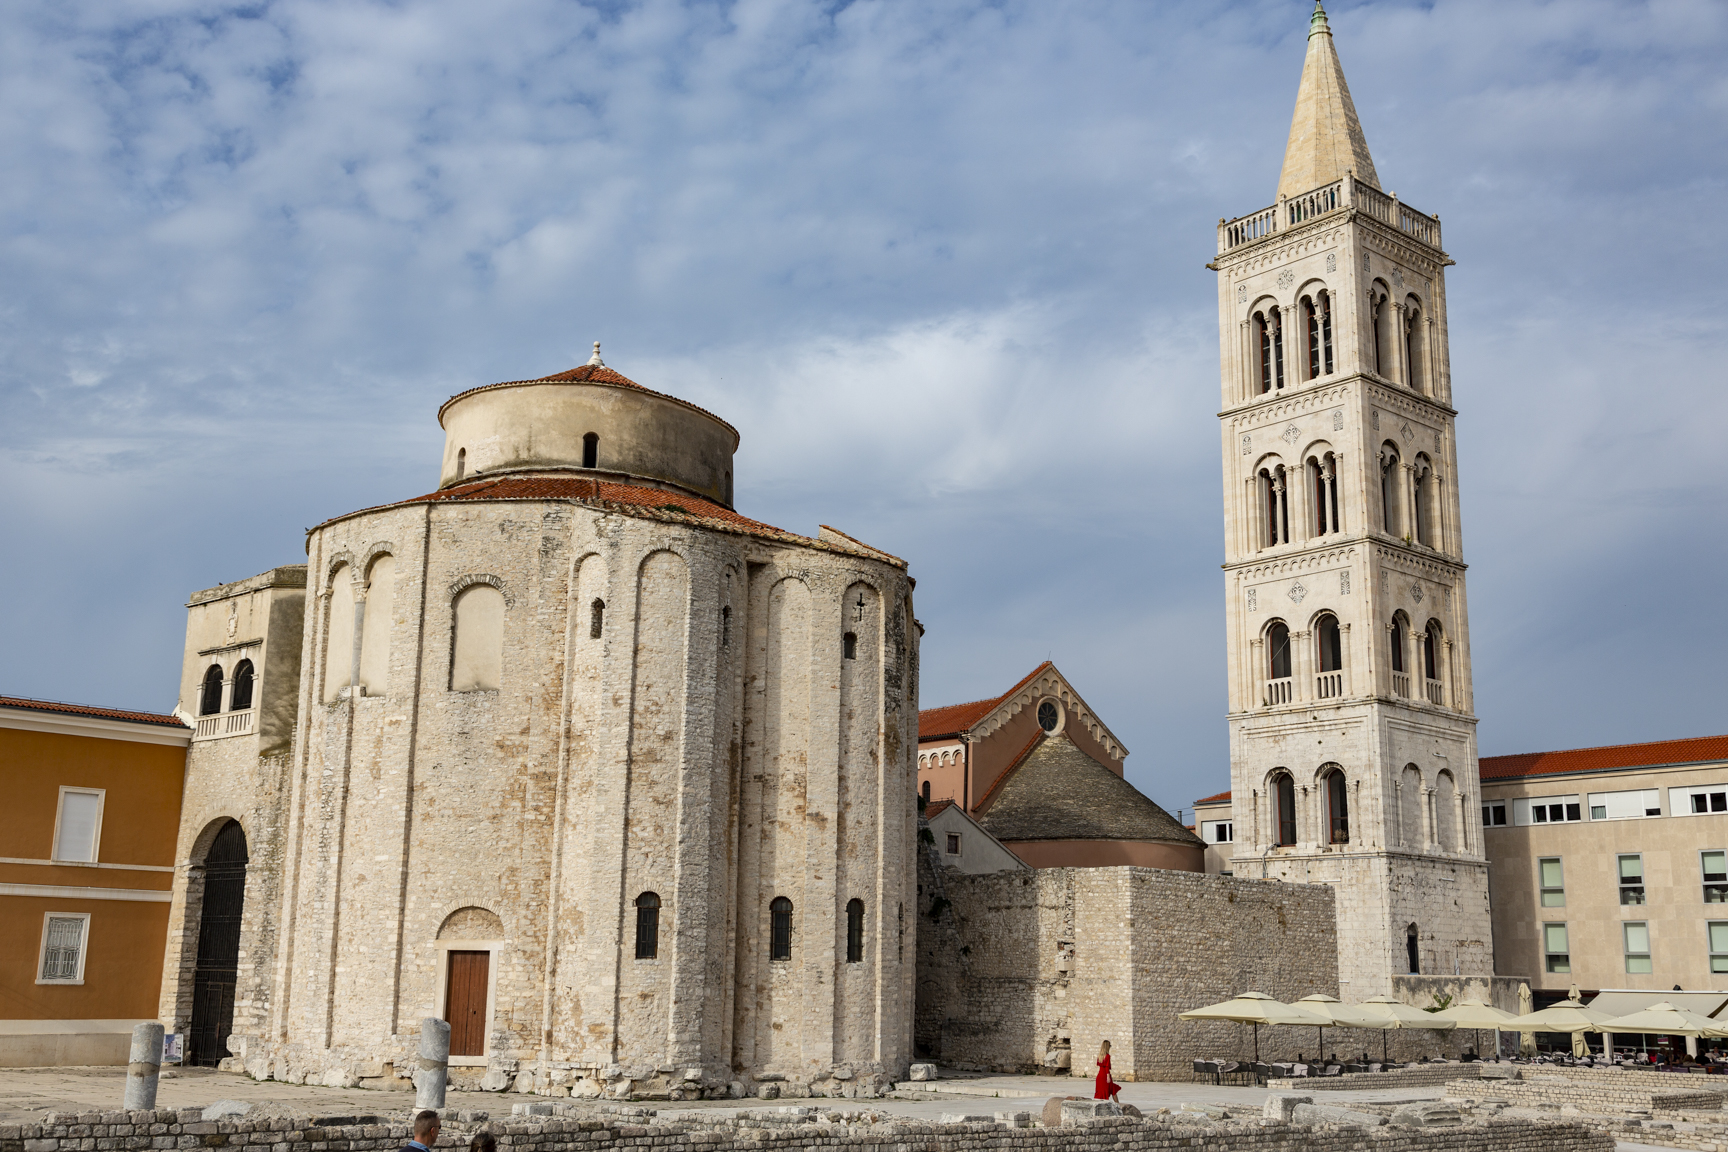 UNESCO World Heritage Site of Zadar